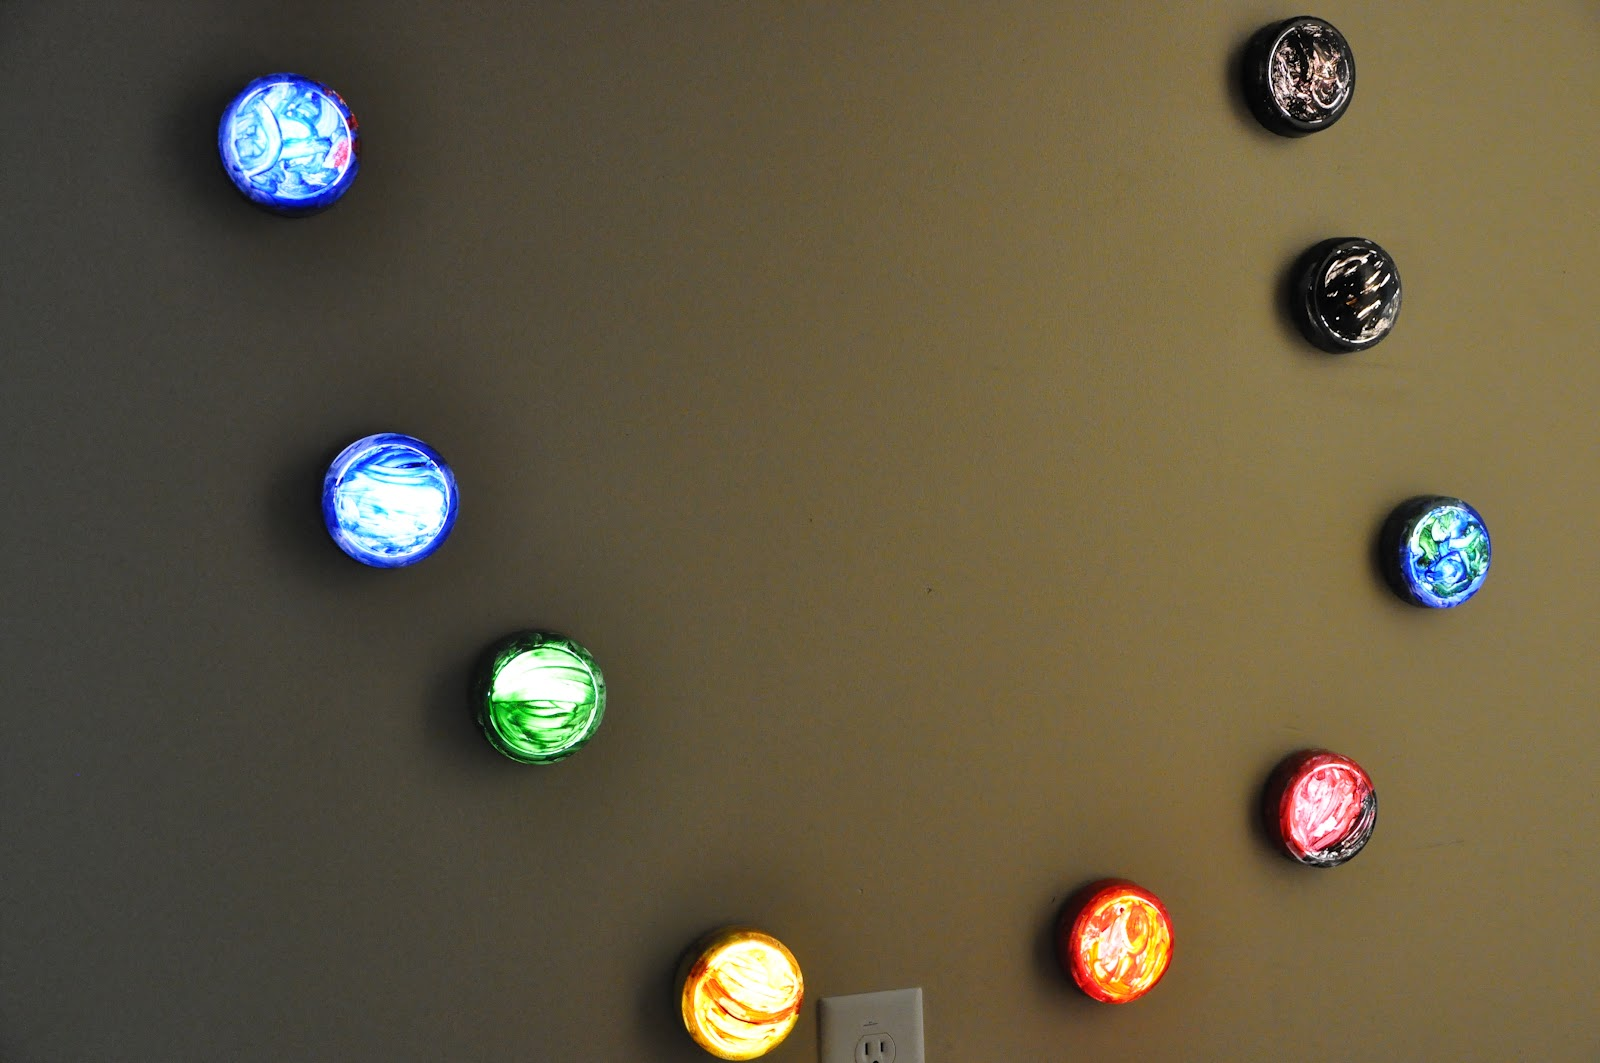 Push light planets activities for children paint play rainy day the solar system through the eyes of a 3 year old he still wants to get a big push light to paint the sun aloadofball Gallery